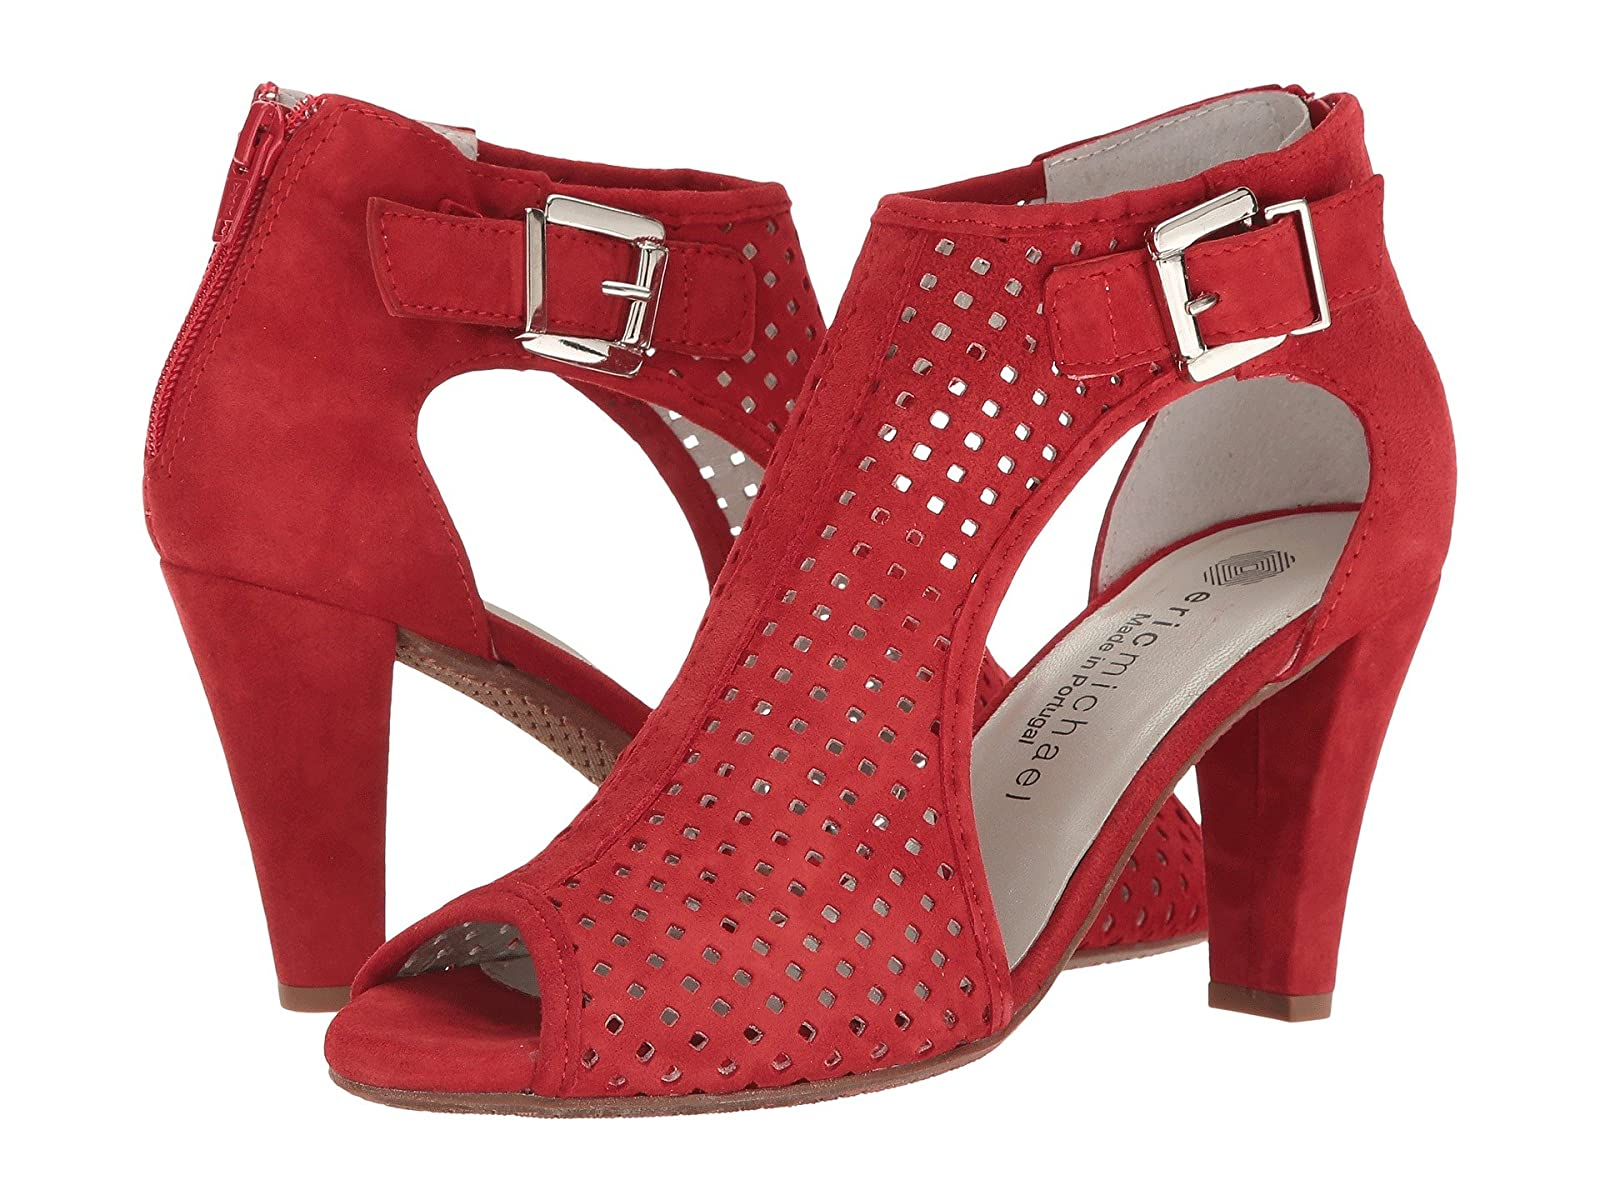 Eric Michael CrystalCheap and distinctive eye-catching shoes